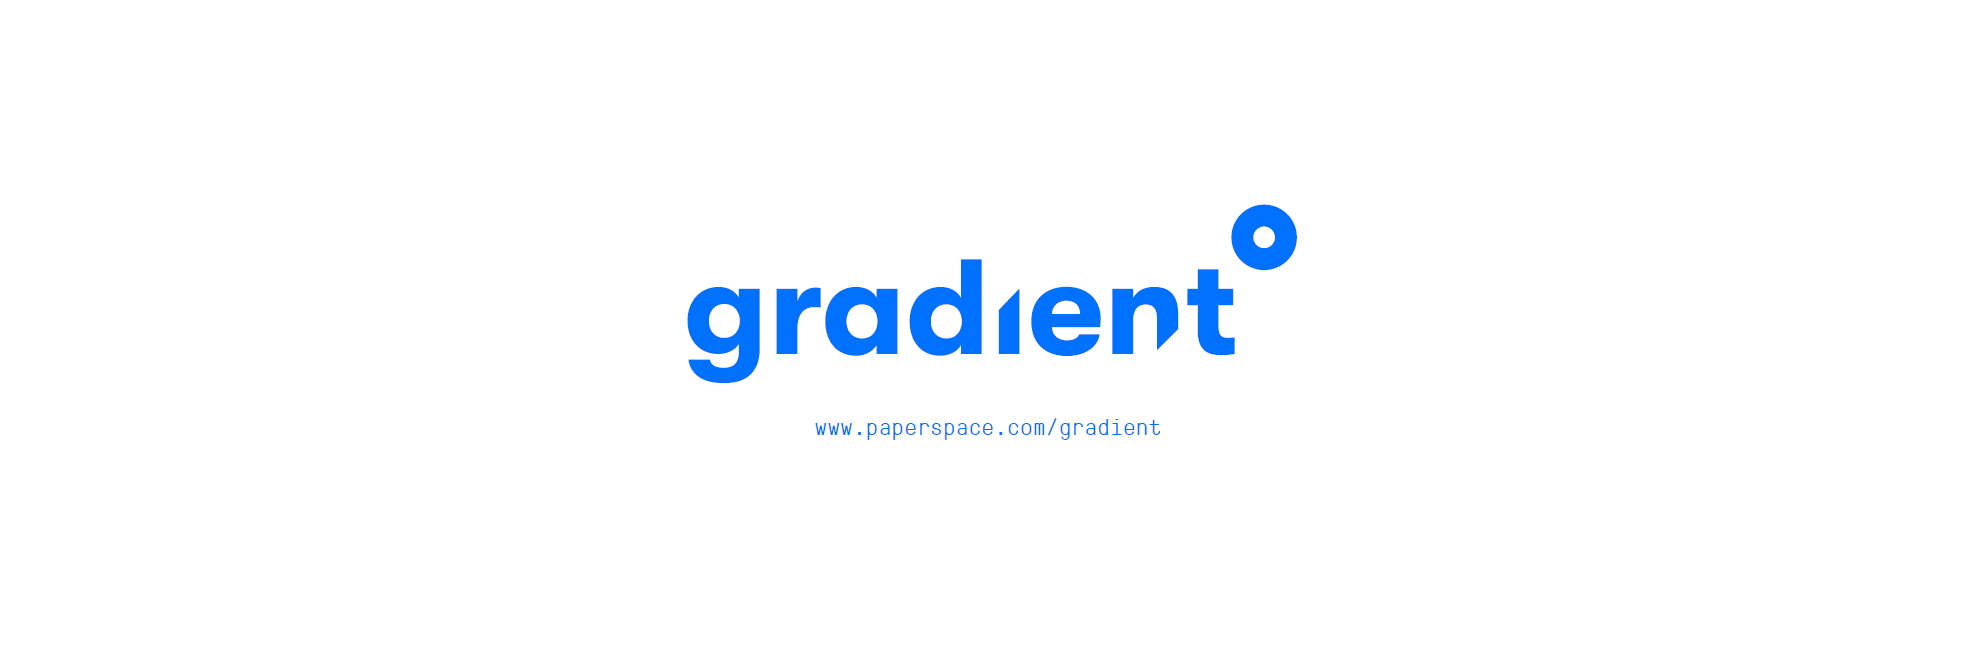 Introducing Gradient°